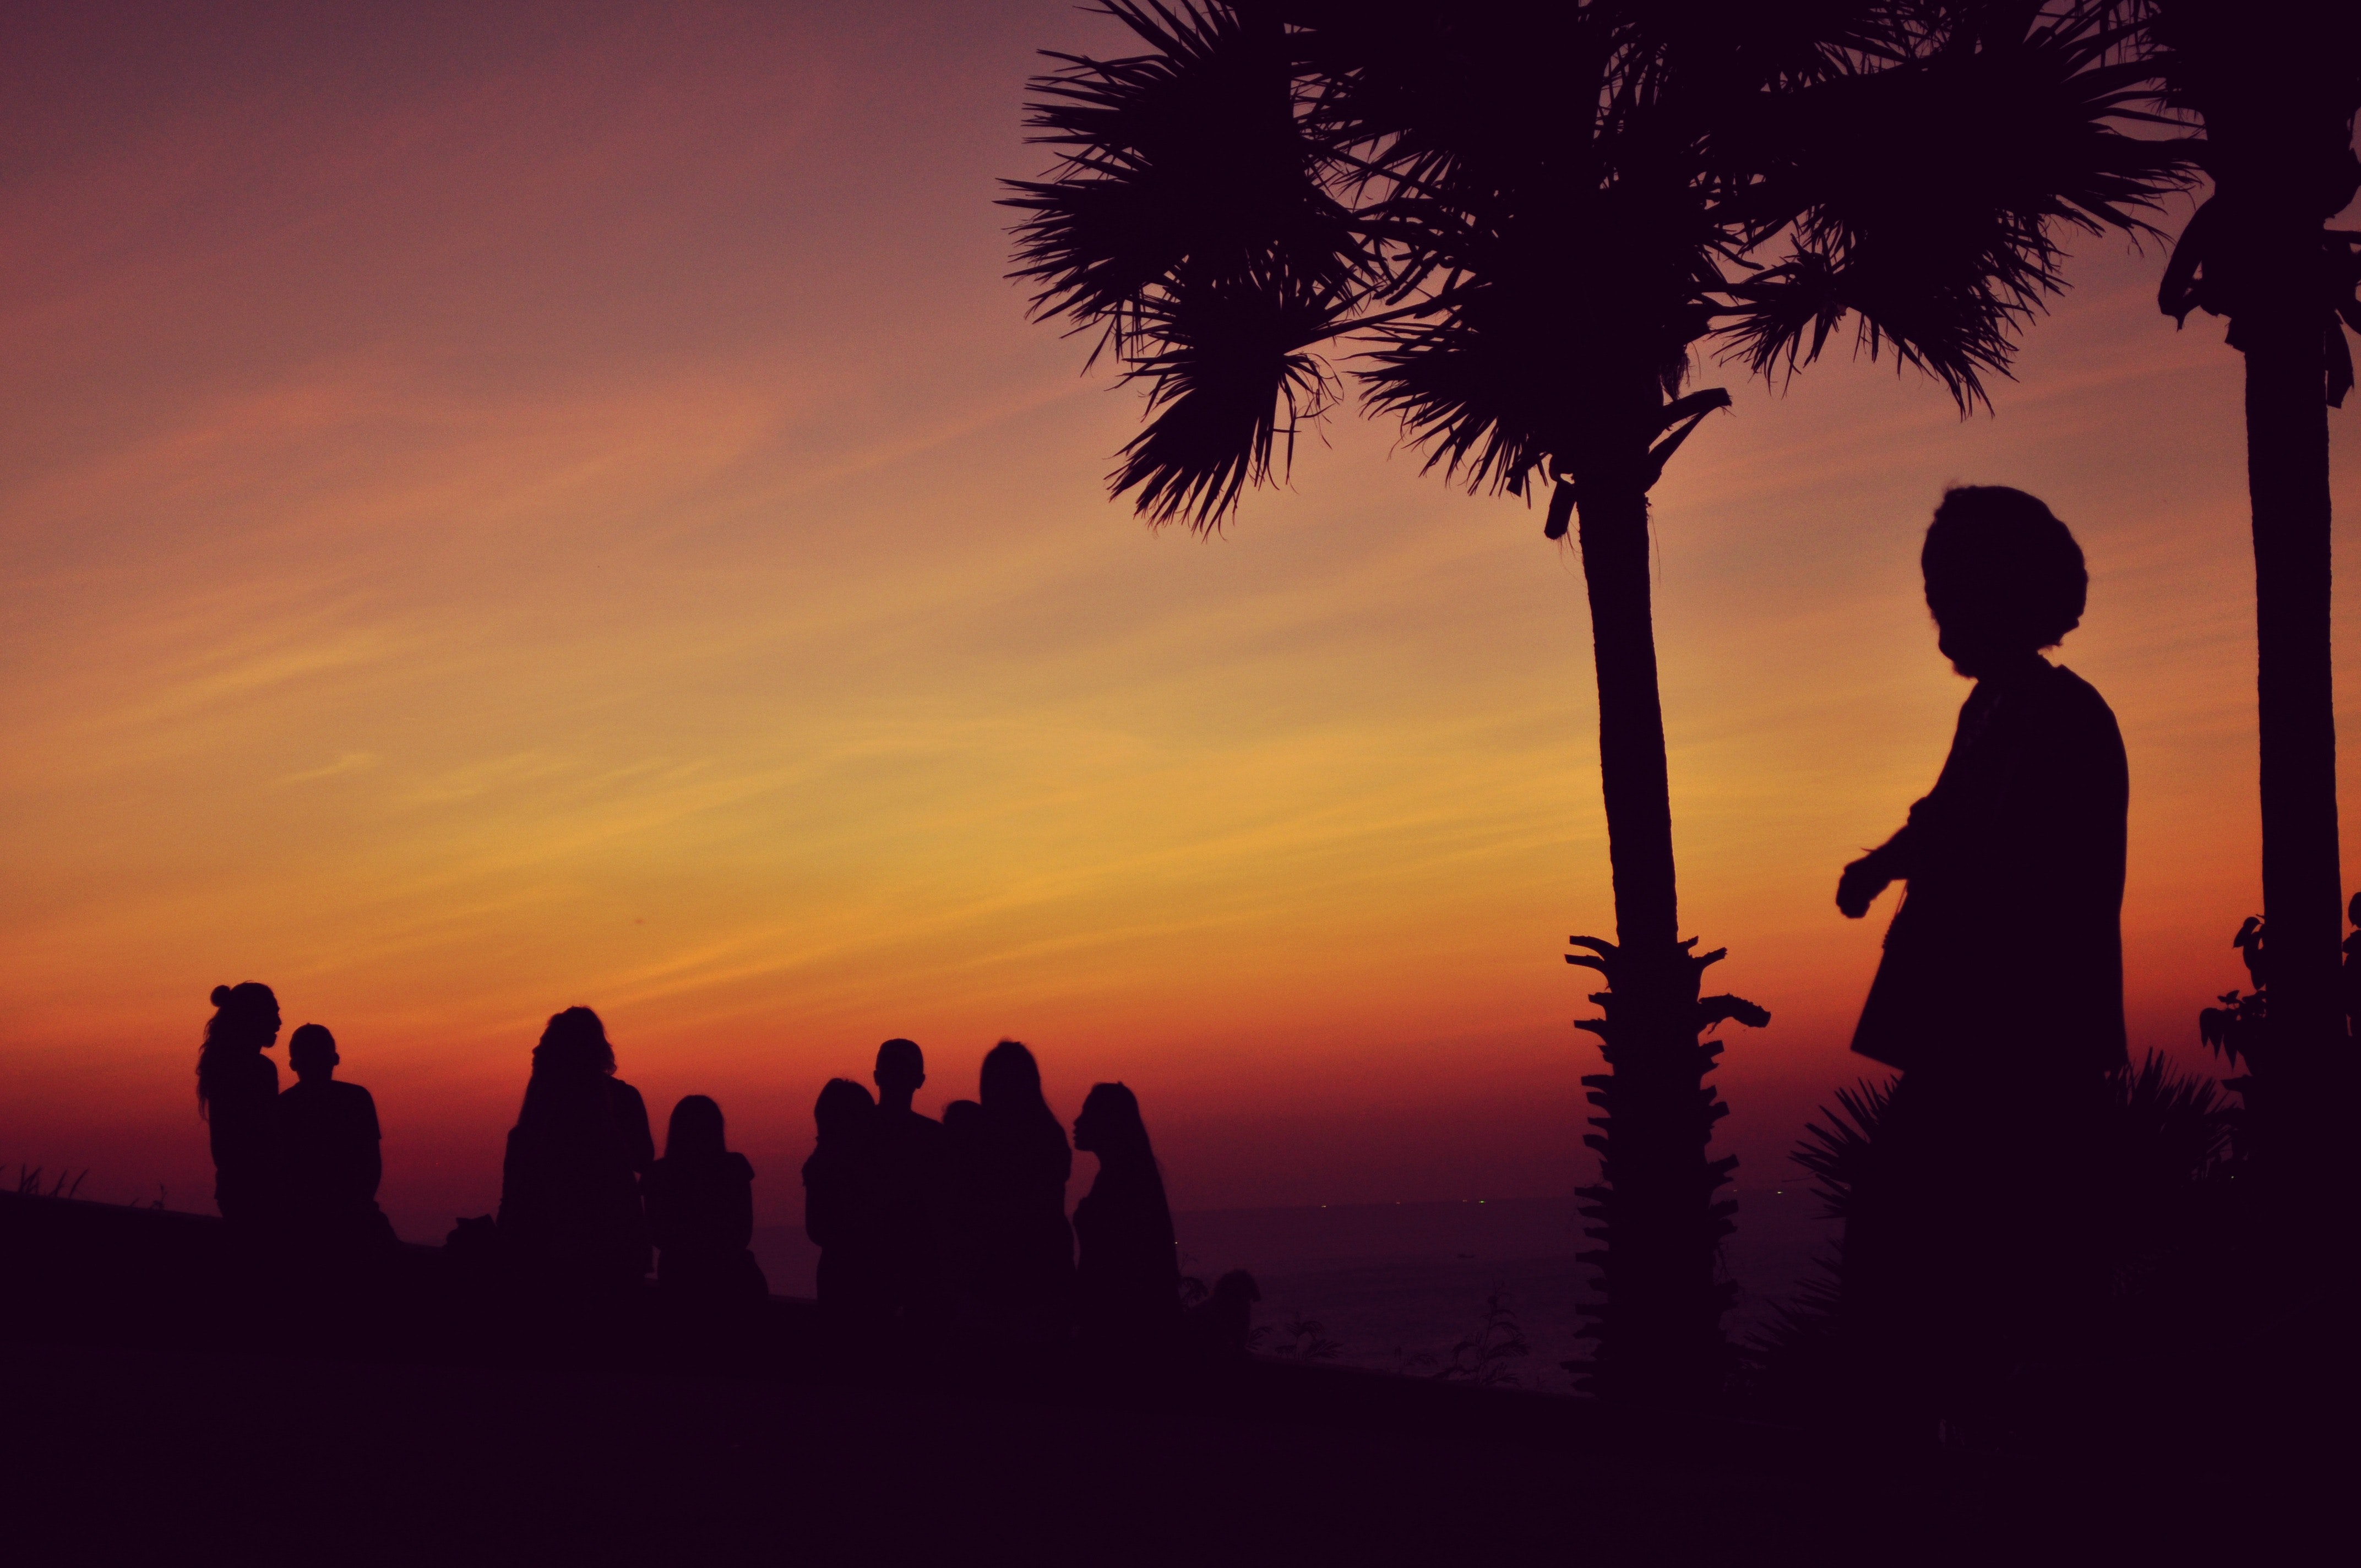 Silhouette of People Standing Under Orange Sky, Sunrise, Sunset, Sky, Silhouette, HQ Photo